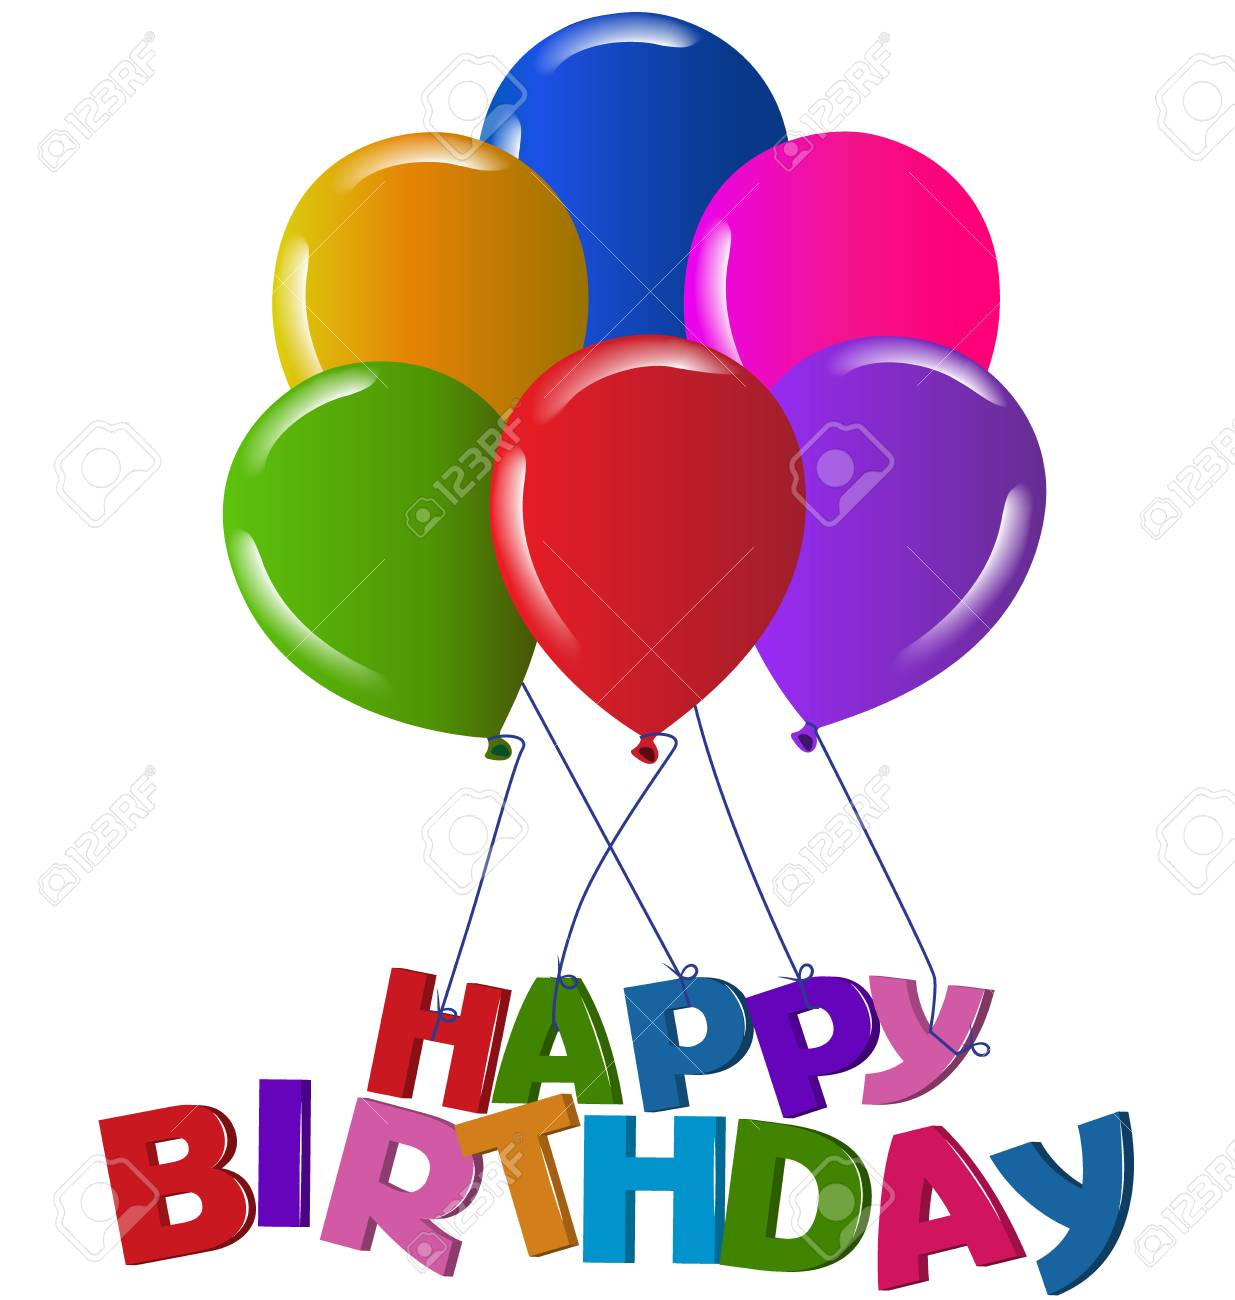 Happy birthday 3D words with balloons logo vector image Stock Vector - 70758154